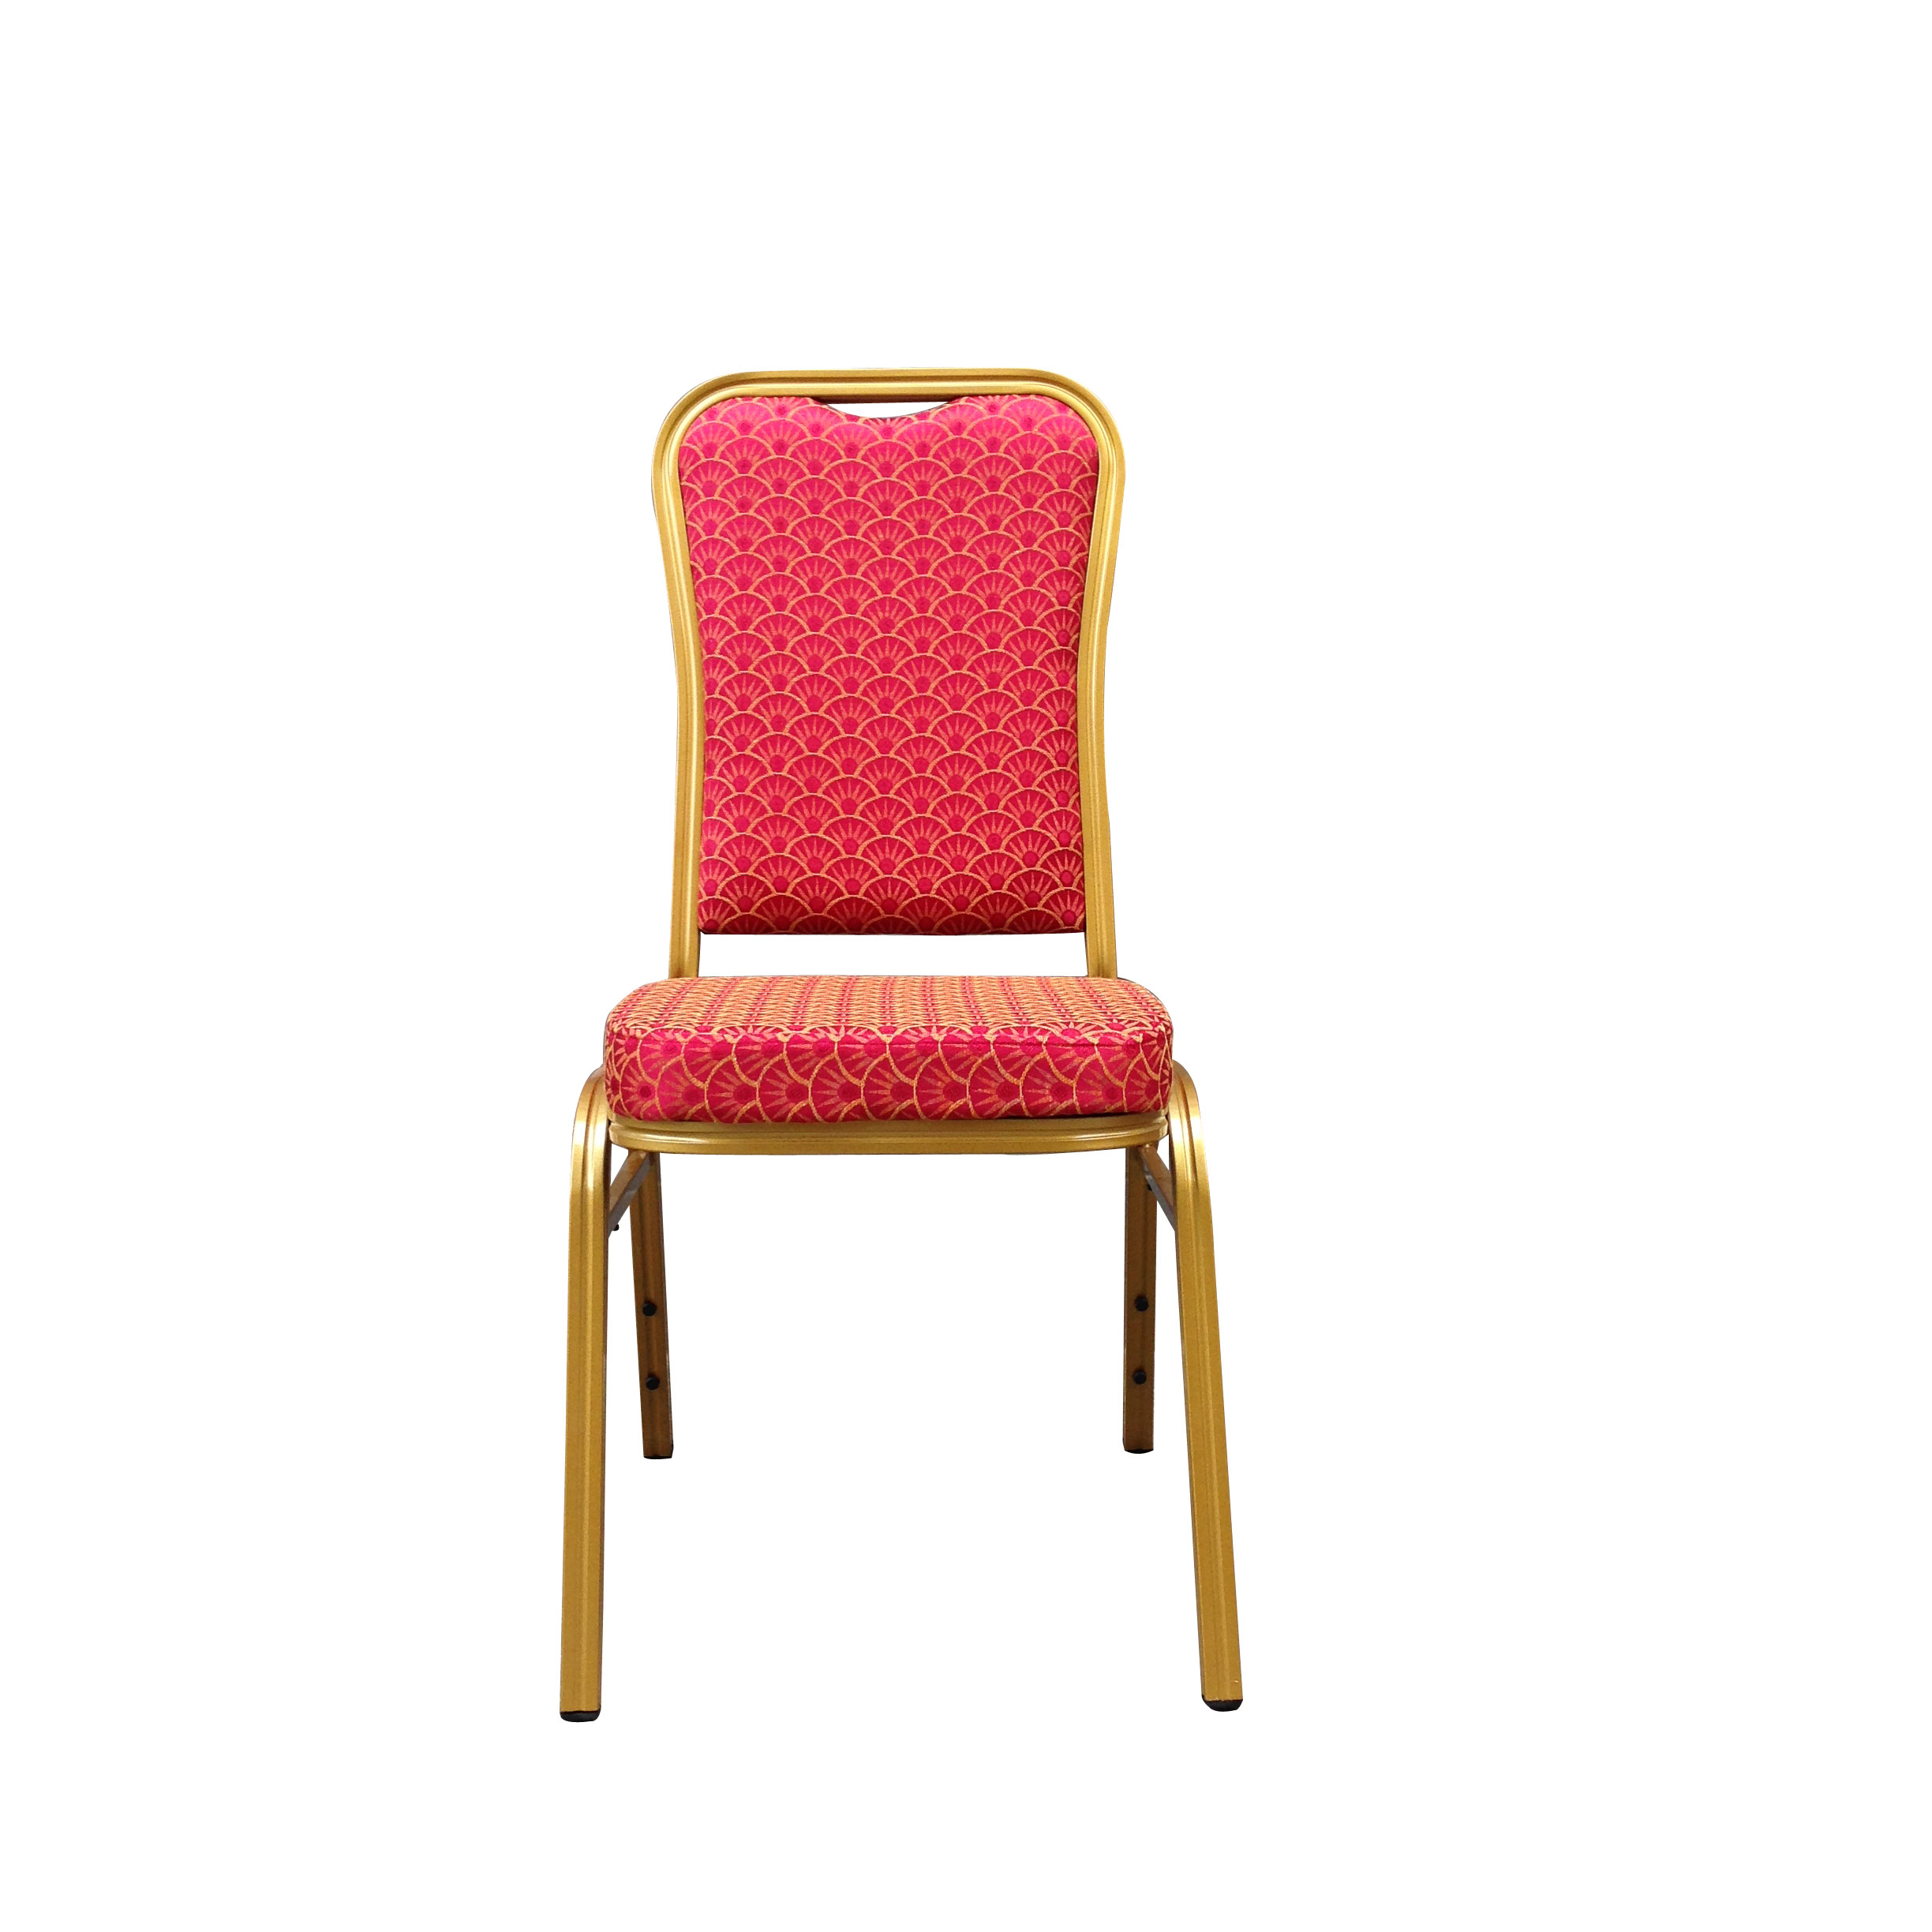 100% Original Theater Church Chair For America Market - Used Banquet Chairs Wholesale SF-L02 – Jiangchang Furniture